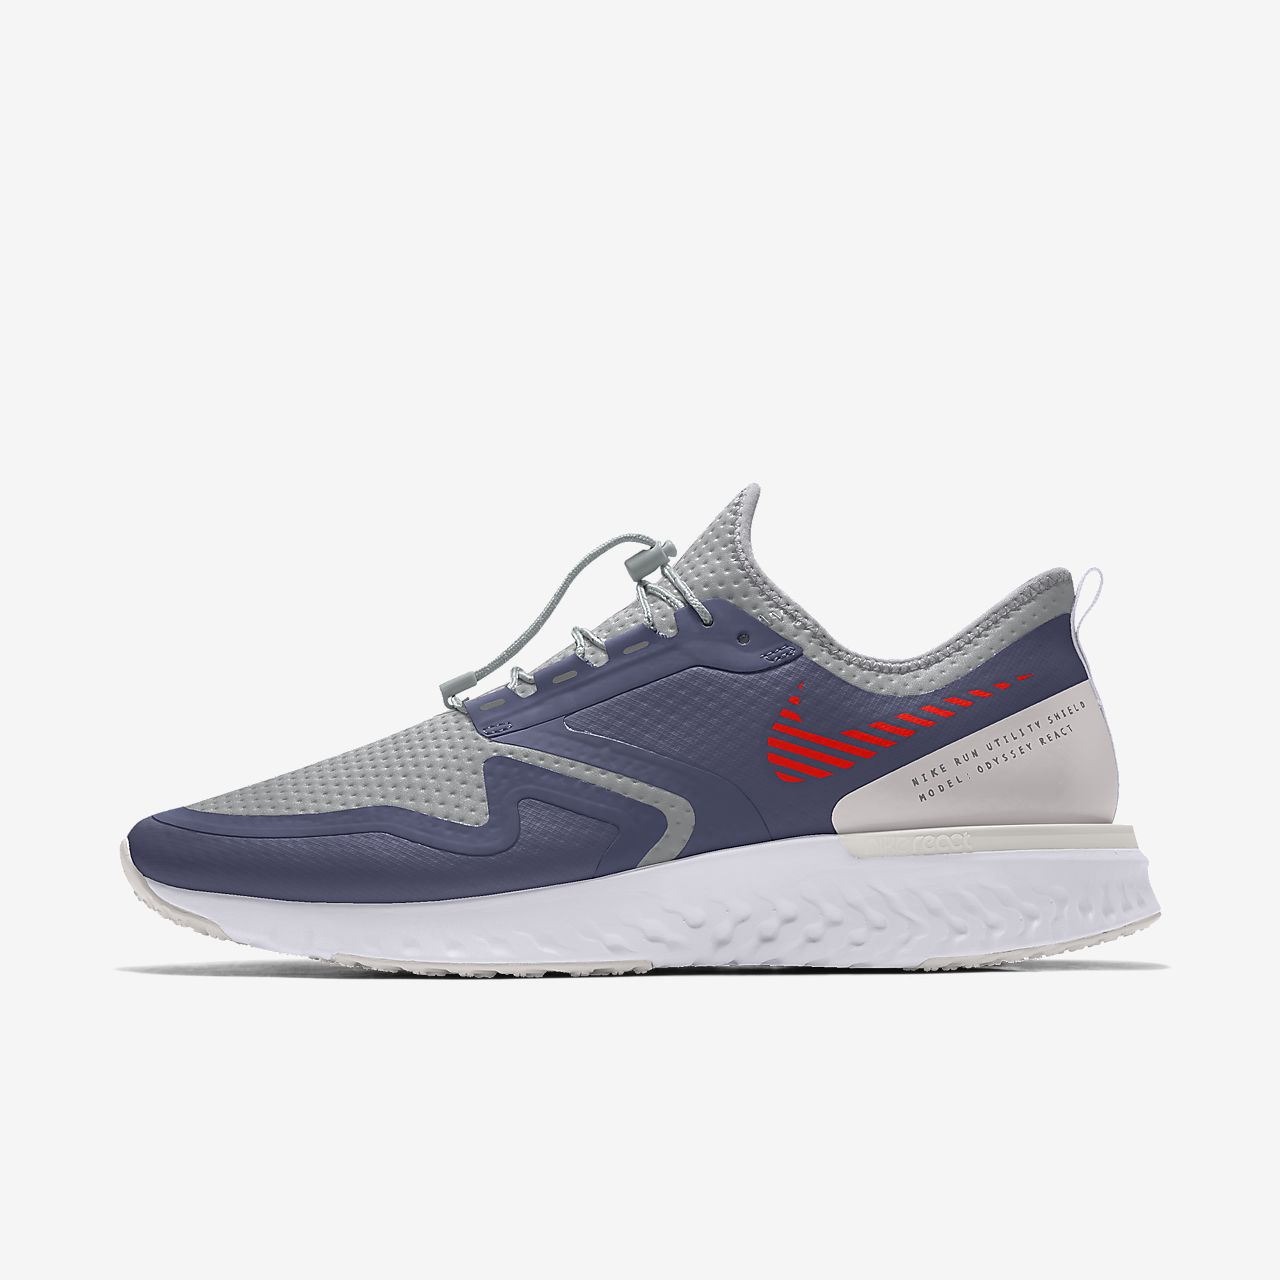 Scarpa da running personalizzabile Nike Odyssey React Shield By You - Donna